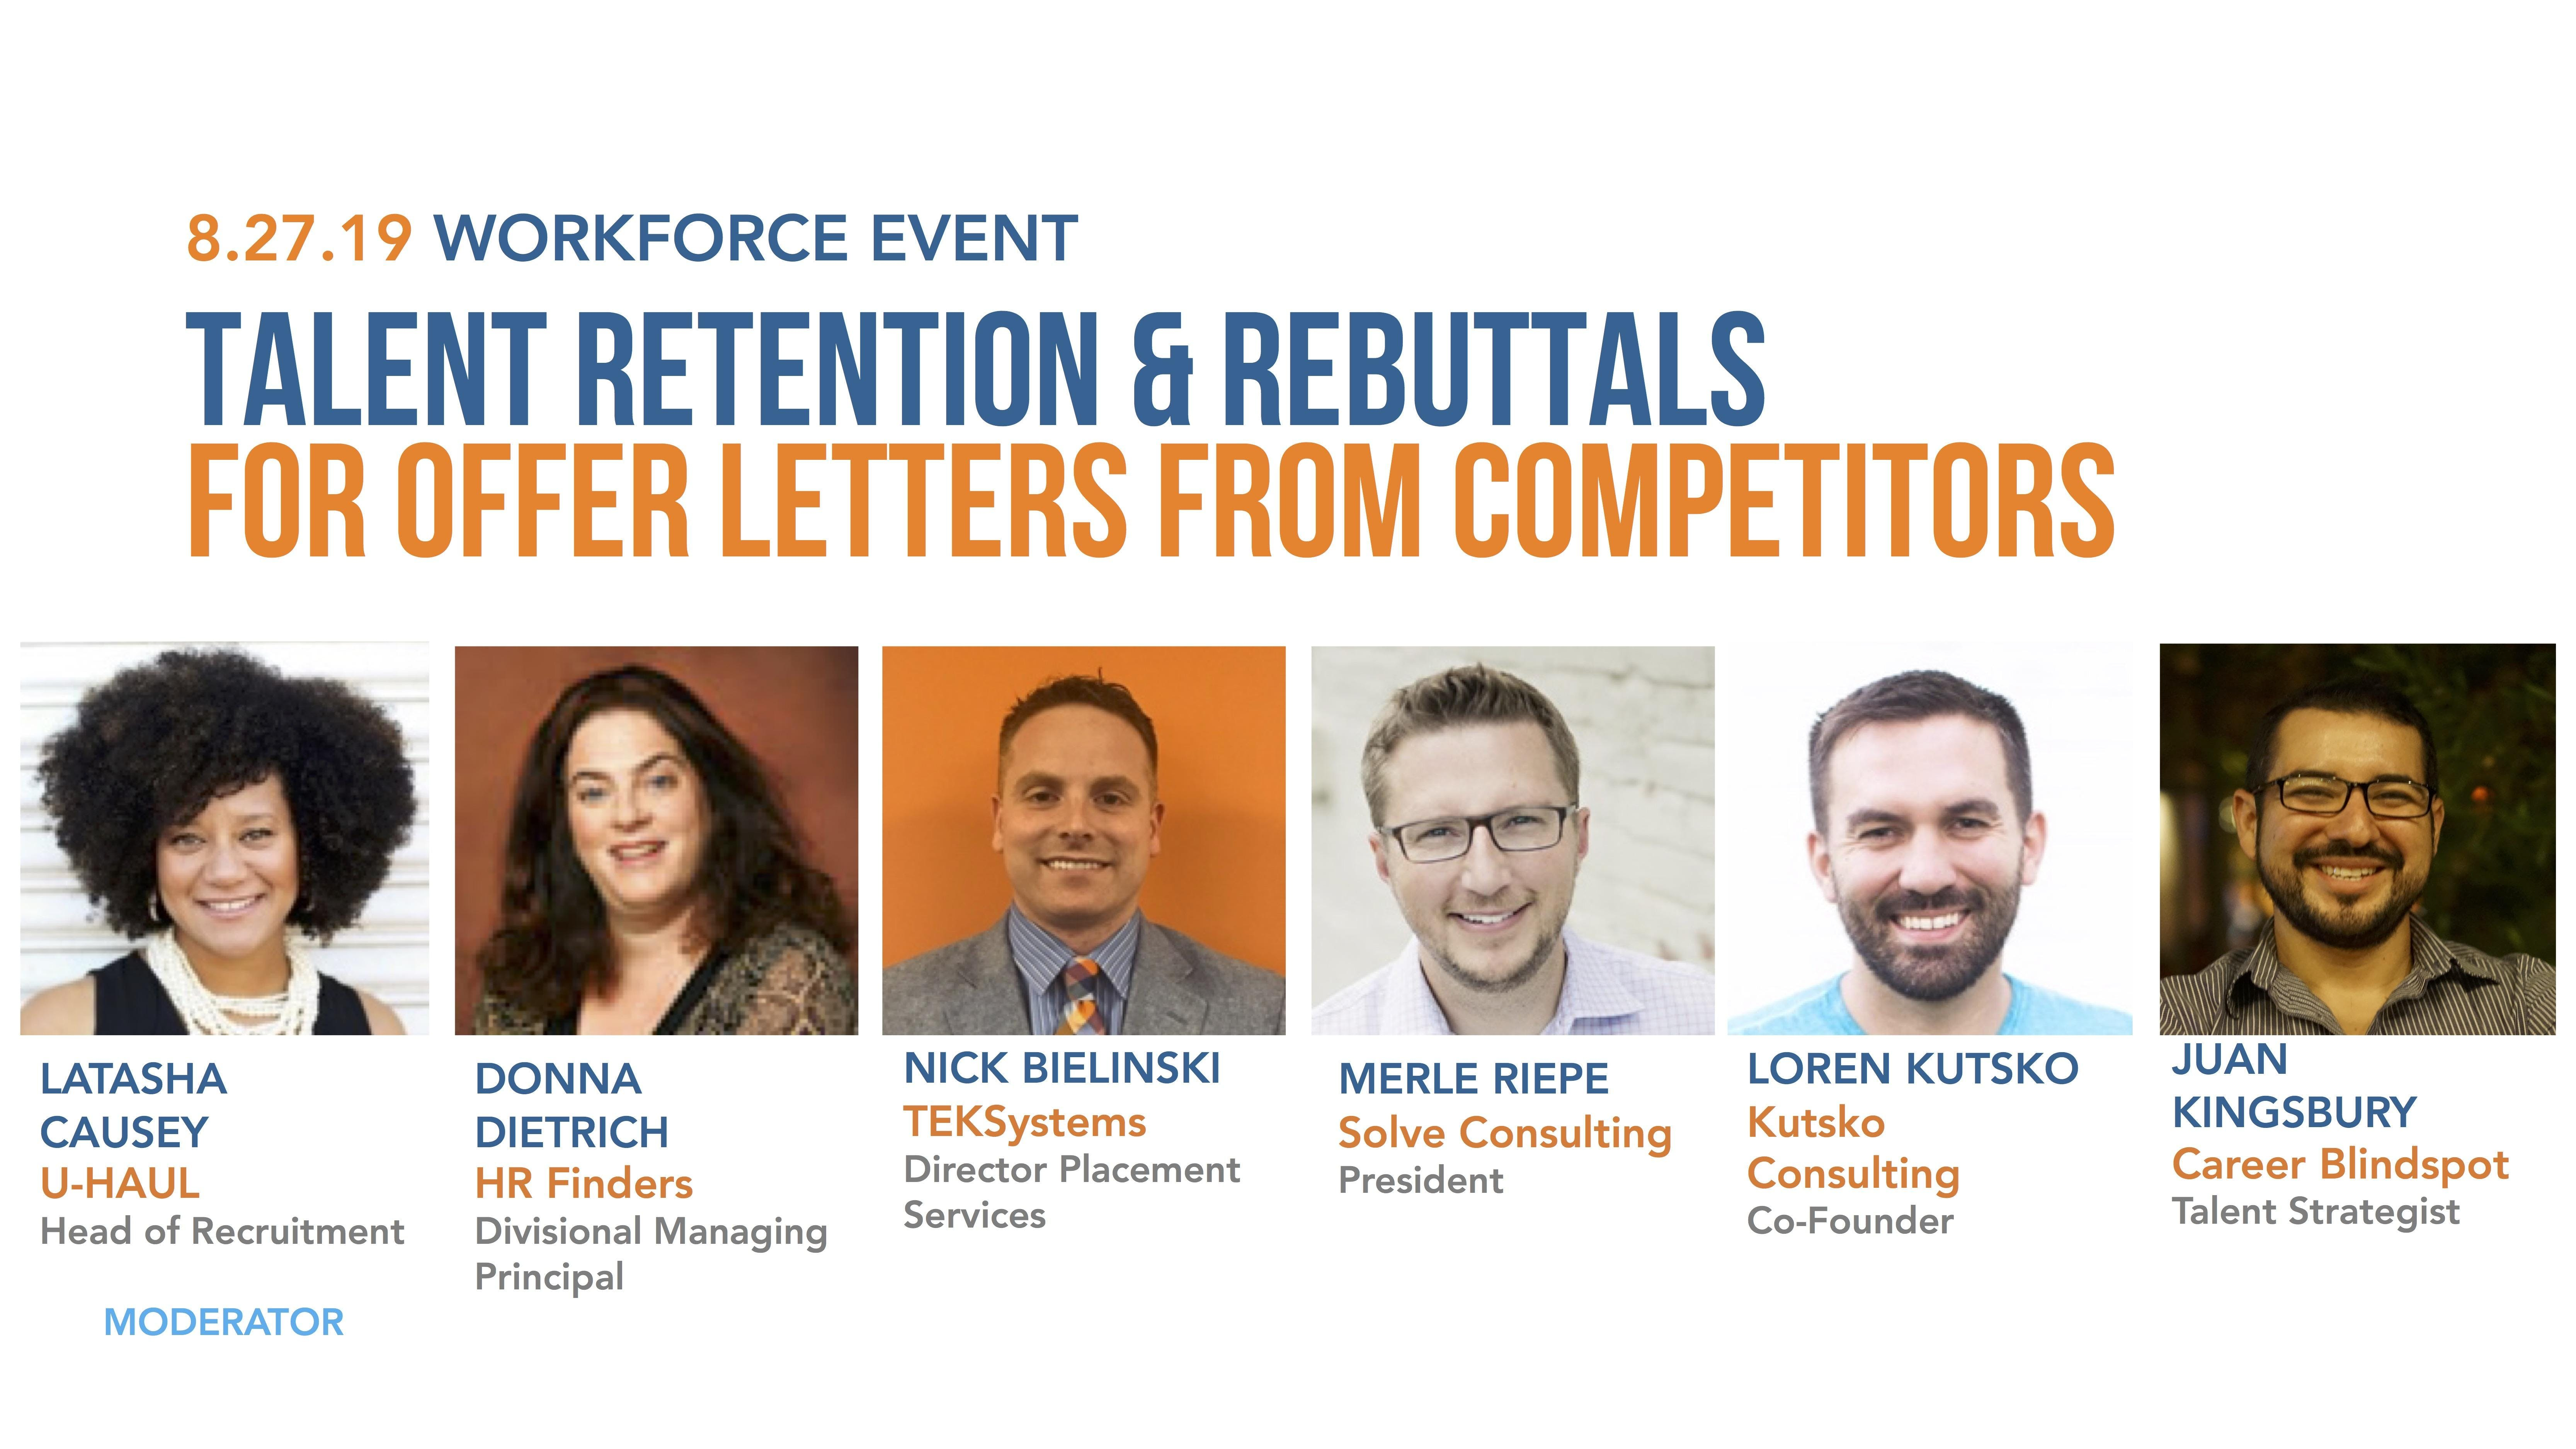 WORKFORCE EVENT: Talent Retention & Rebuttals for Competitor Offer Letters